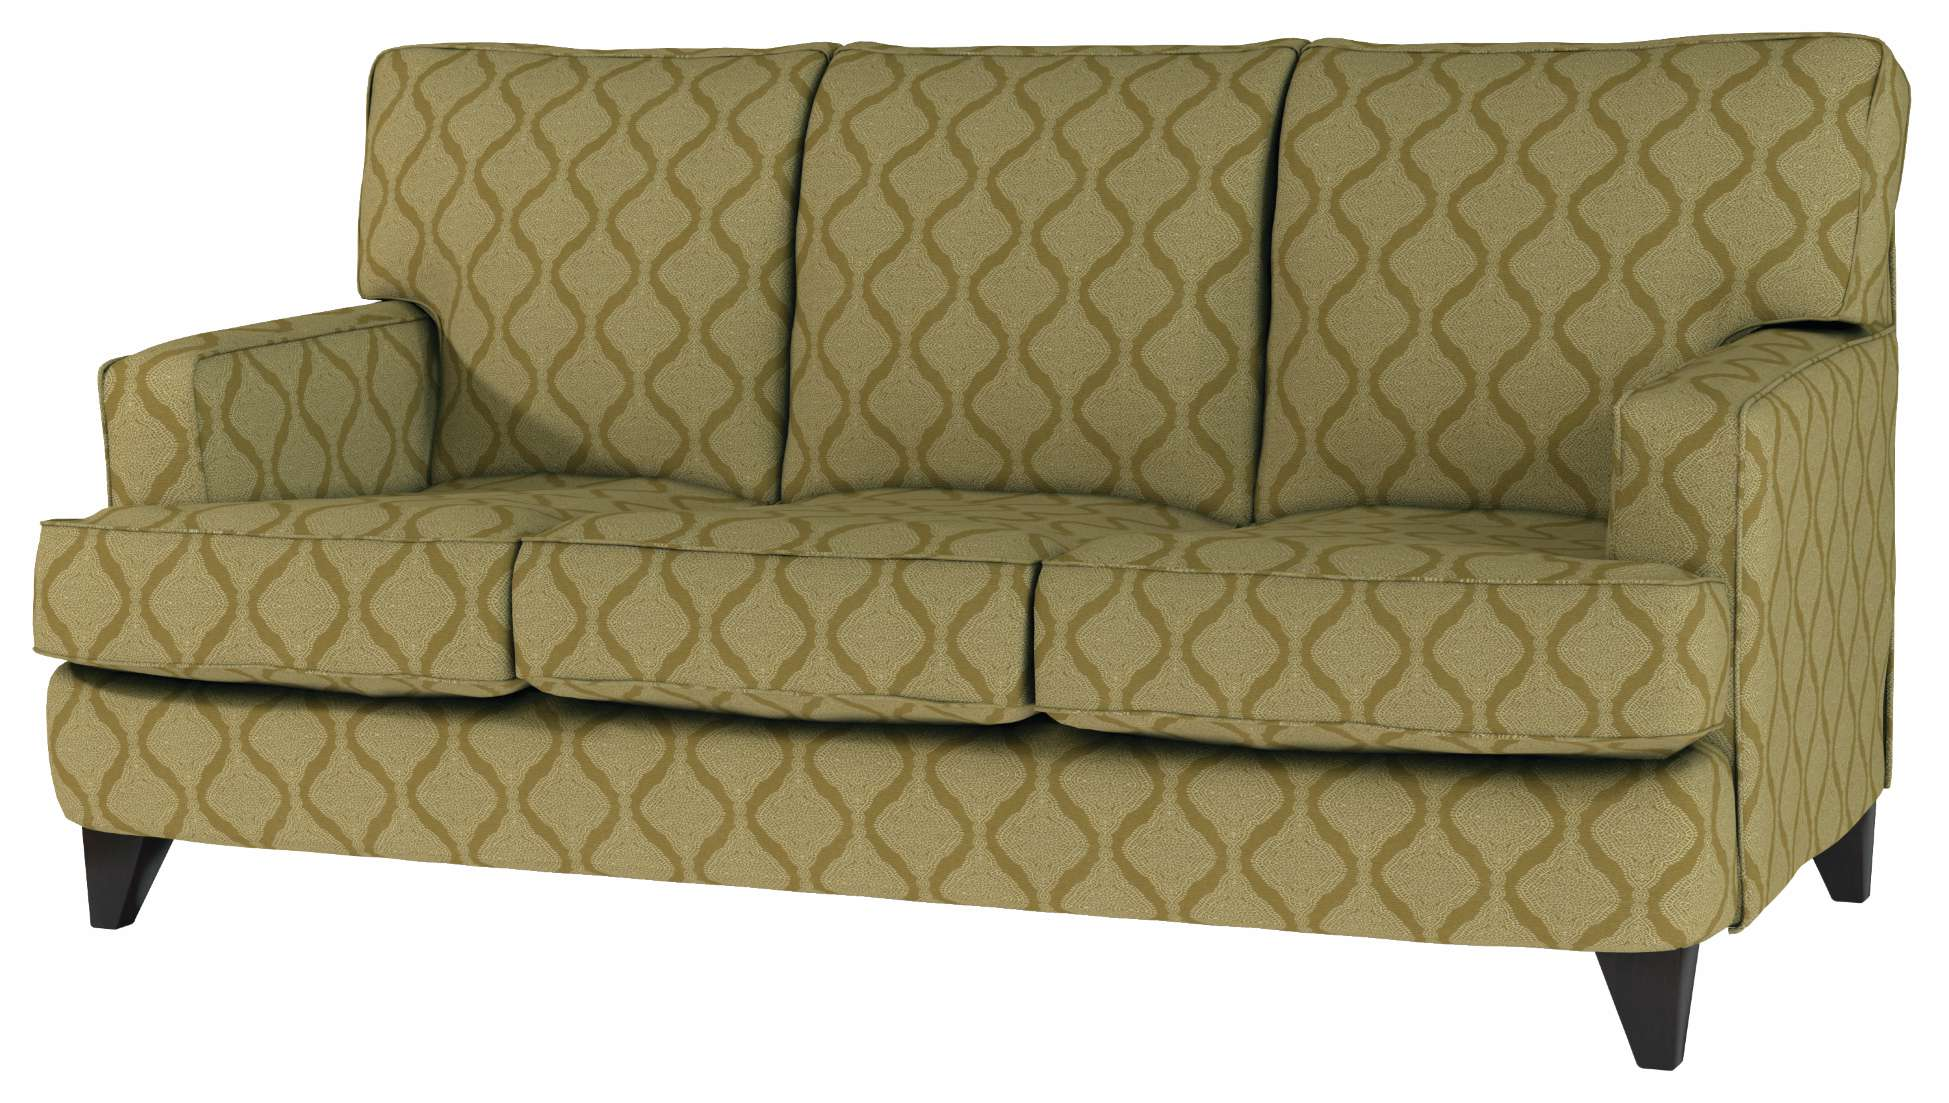 crypton fabric for sofas leather san francisco quick ship macon apartment sized sofa in